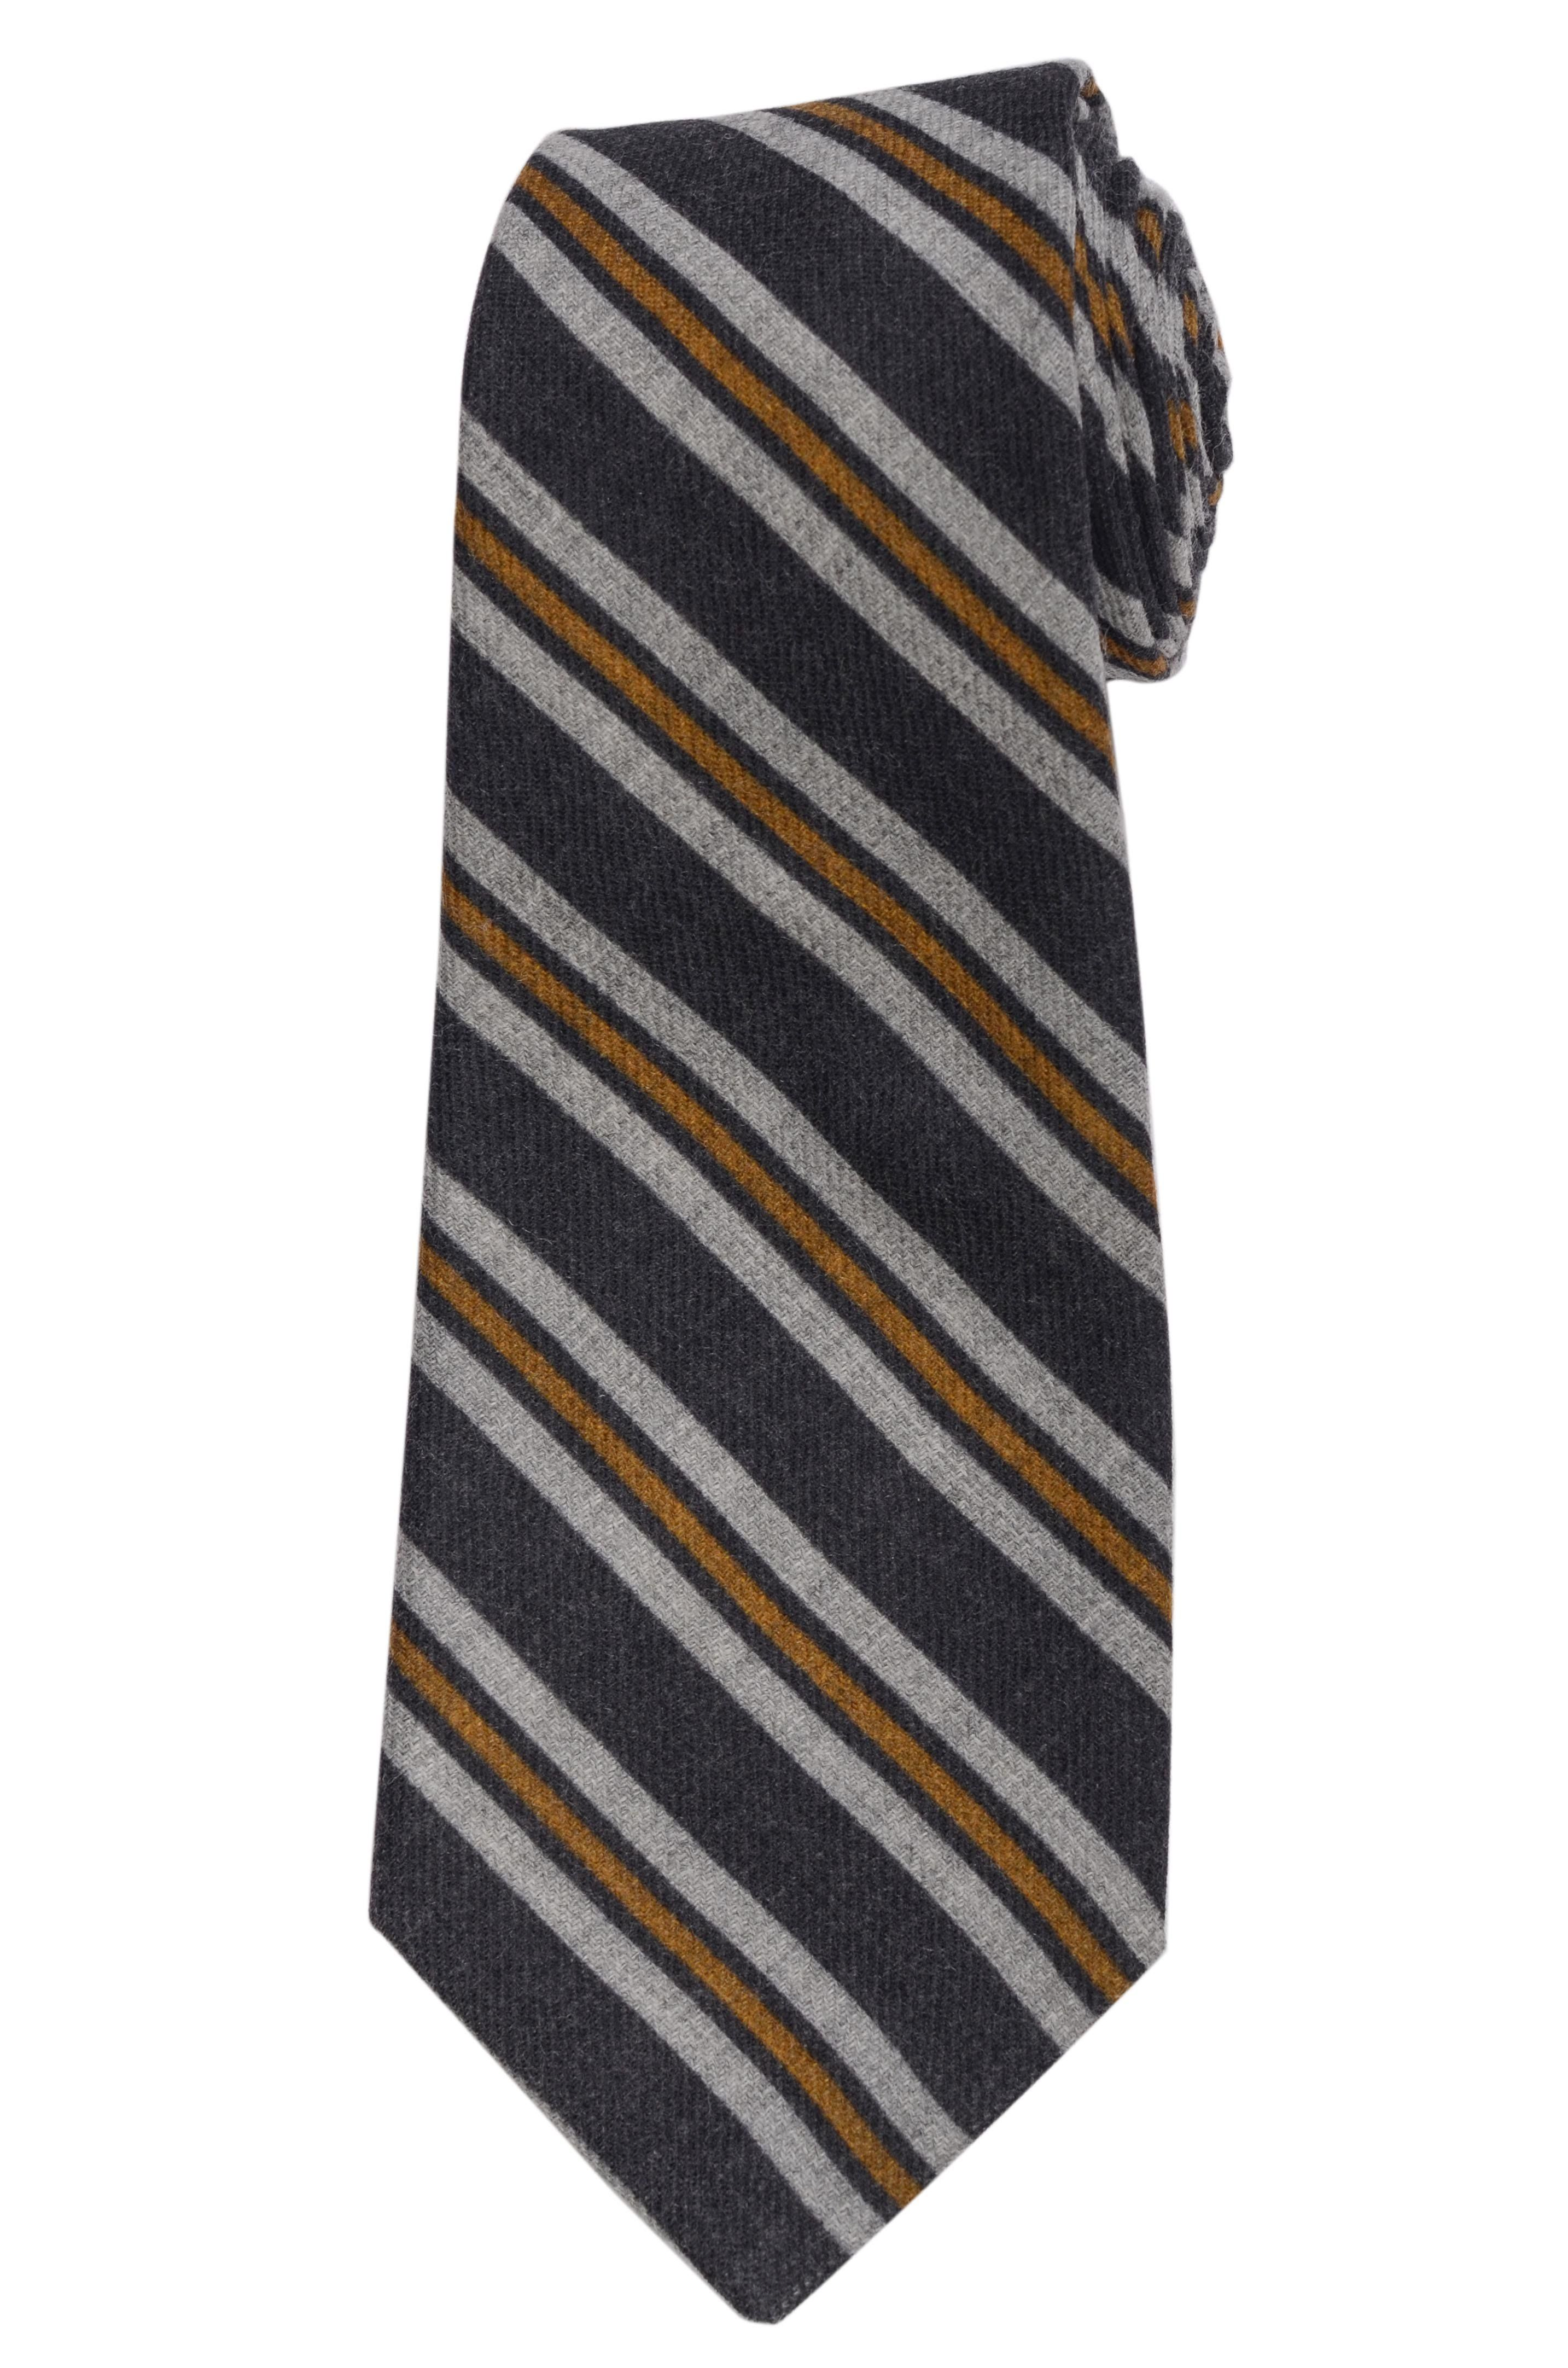 82e03d78a16a KITON Napoli Hand-Made Seven Fold Blue Narrow-Striped Wool-Silk Tie NEW